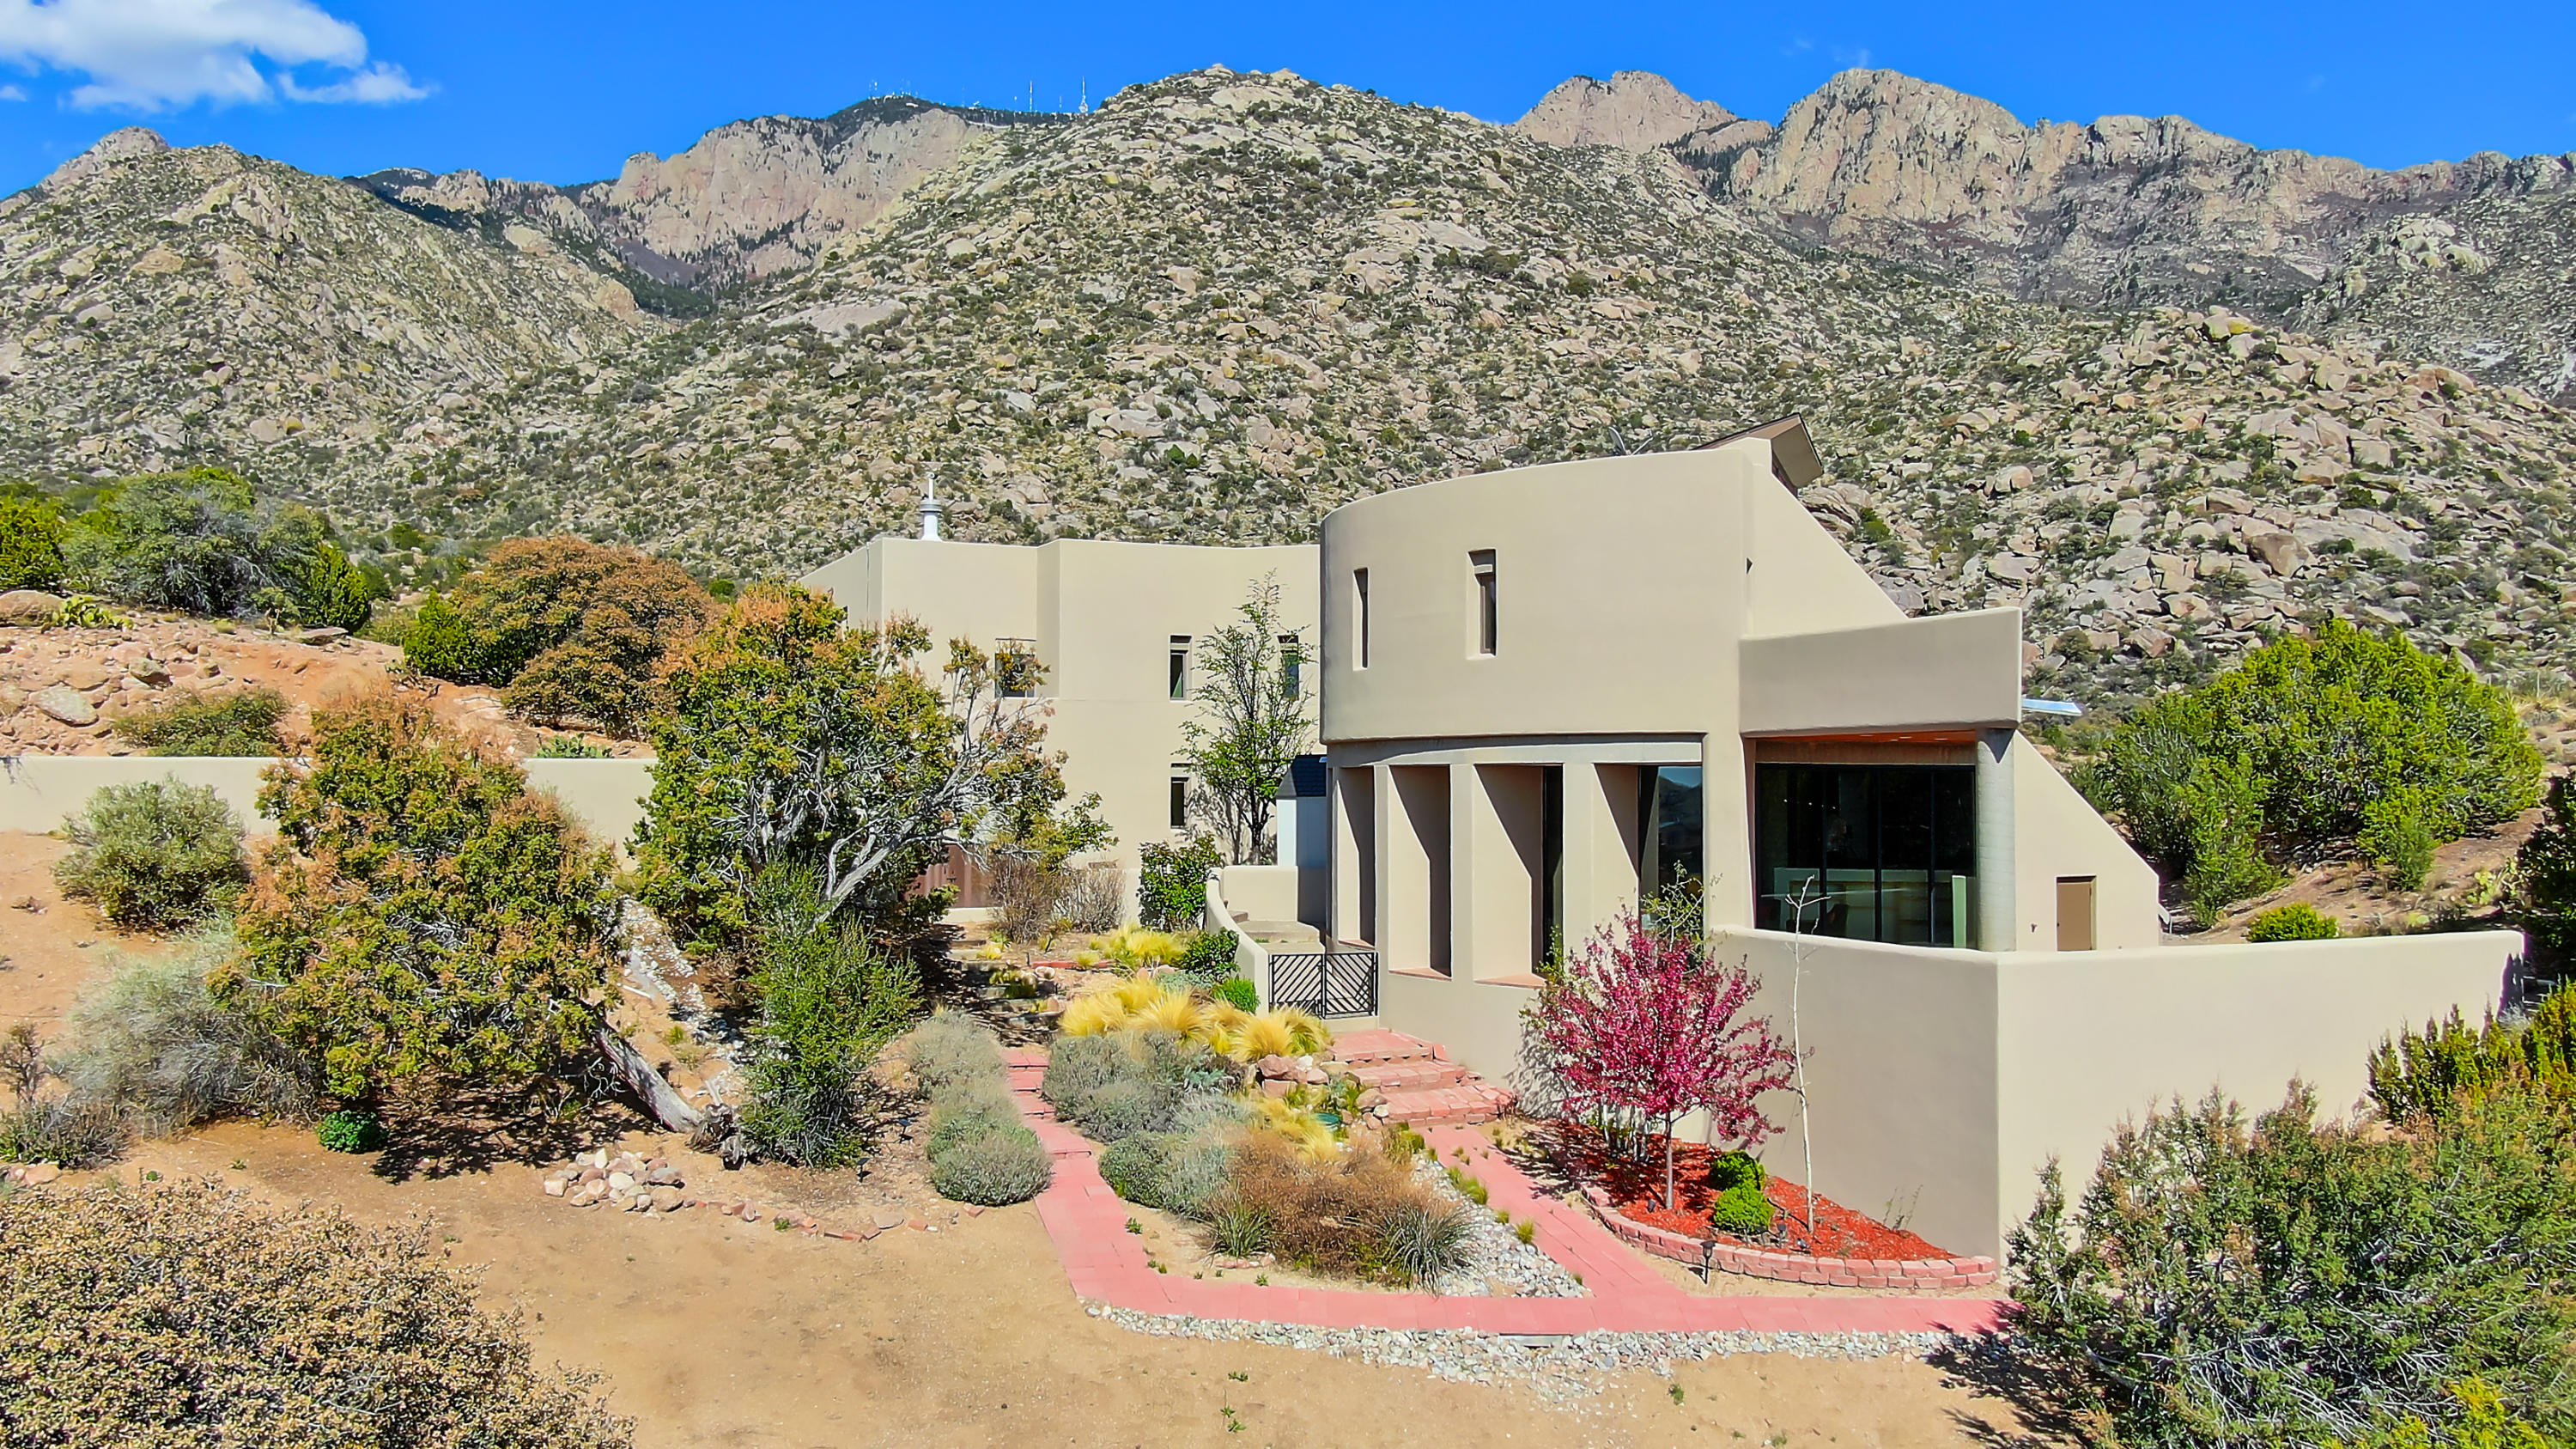 Clean, Crisp, Contemporary lines in thisarchitectural masterpiece by renowned Antoine Predock. ''The Boulder House'' represents the finest of Sandia Hts situated on +/-2.2 secluded acres w/awe-inspiring vistas from mtns to cityand up & down the Rio Grande Valley! Walls of windows bring outside in & incredibly showcase the surrounding 360 degrees. Dramatic open living & dining areas provide exceptional flow/function & allows for huge options in use- room for everyone! Two mstr stes, mltple living areas, loft, office, brick & hrdwd flrs & three unique fp's. Tremendous renovations thruout incldng synthetic stucco & septic tank. Chef's kitchen & the master ste will stop you in your tracks! Outside be impressed w/fantastic view balconies, pool w/auto-cover & patios w/more ultimate views!